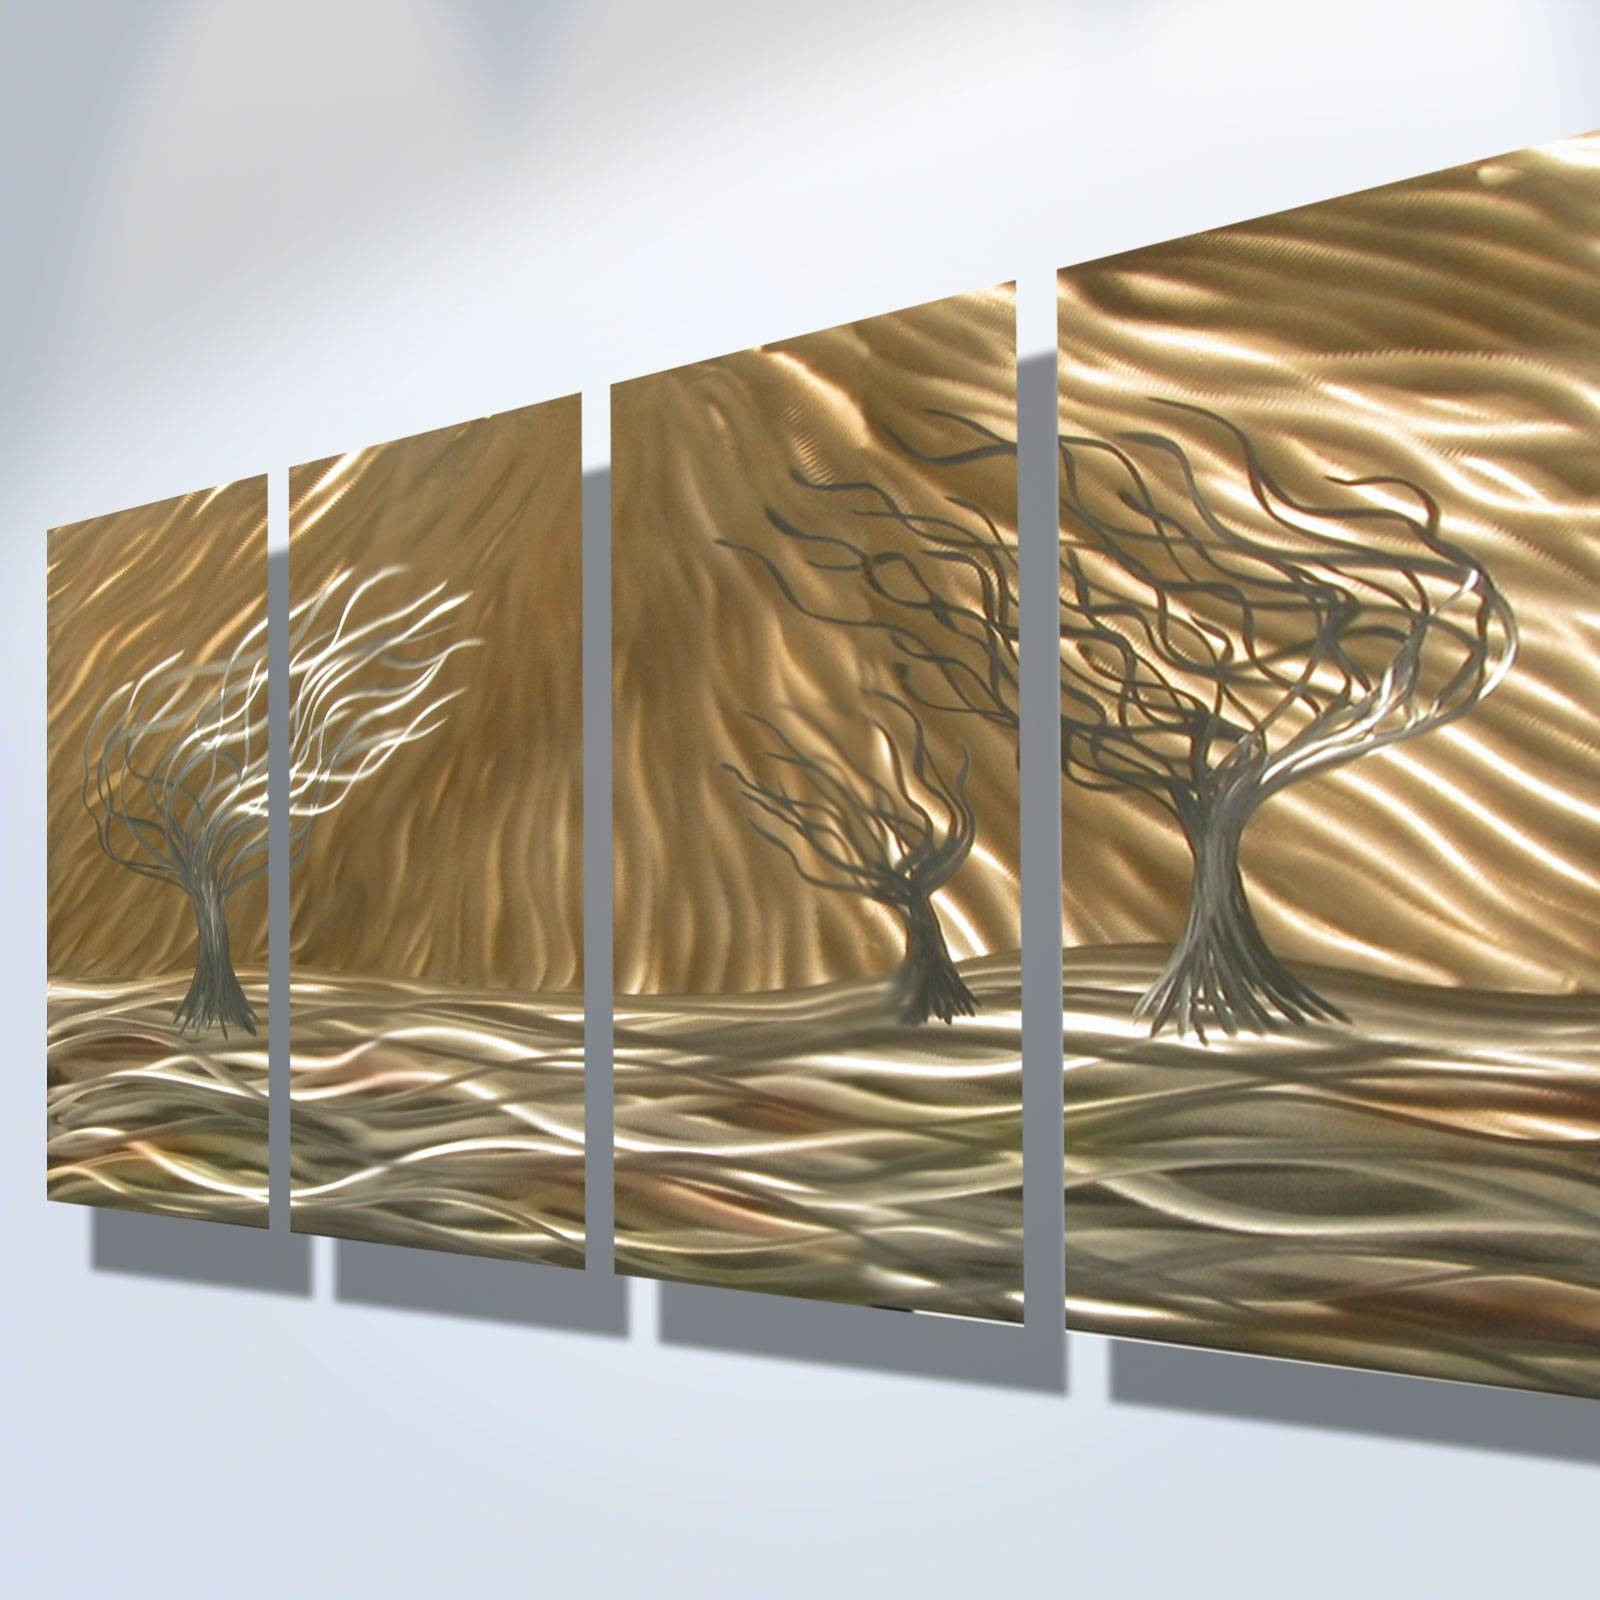 3 Trees 4 Panel – Abstract Metal Wall Art Contemporary Modern Inside Current Gold Metal Wall Art (Gallery 12 of 20)